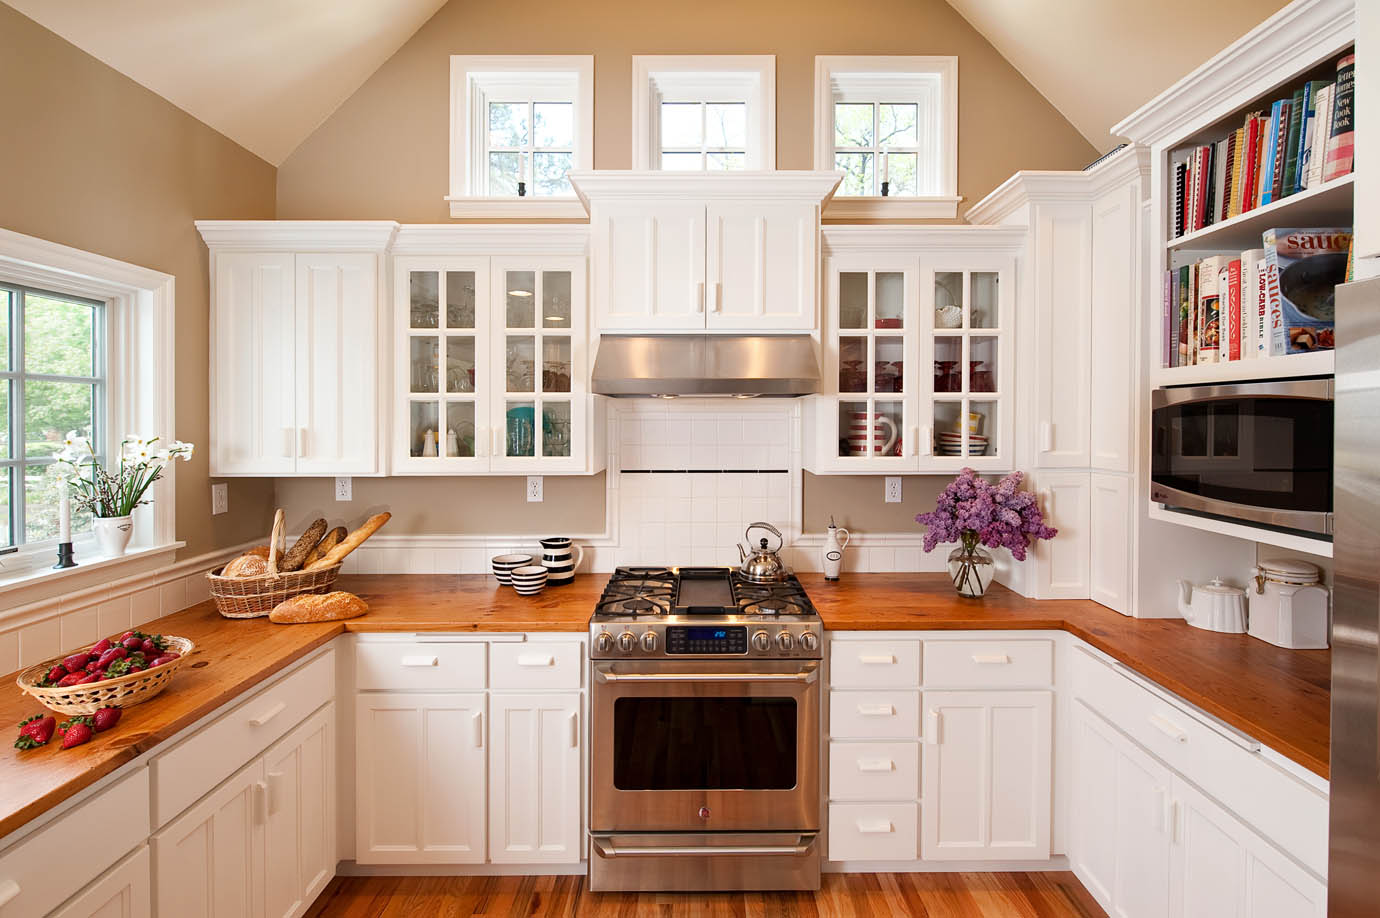 Kitchen design featuring pine counters, clear story windows, and glass doors in this Cape Cod white kitchen remodel by renovation contractor Powell Construction.